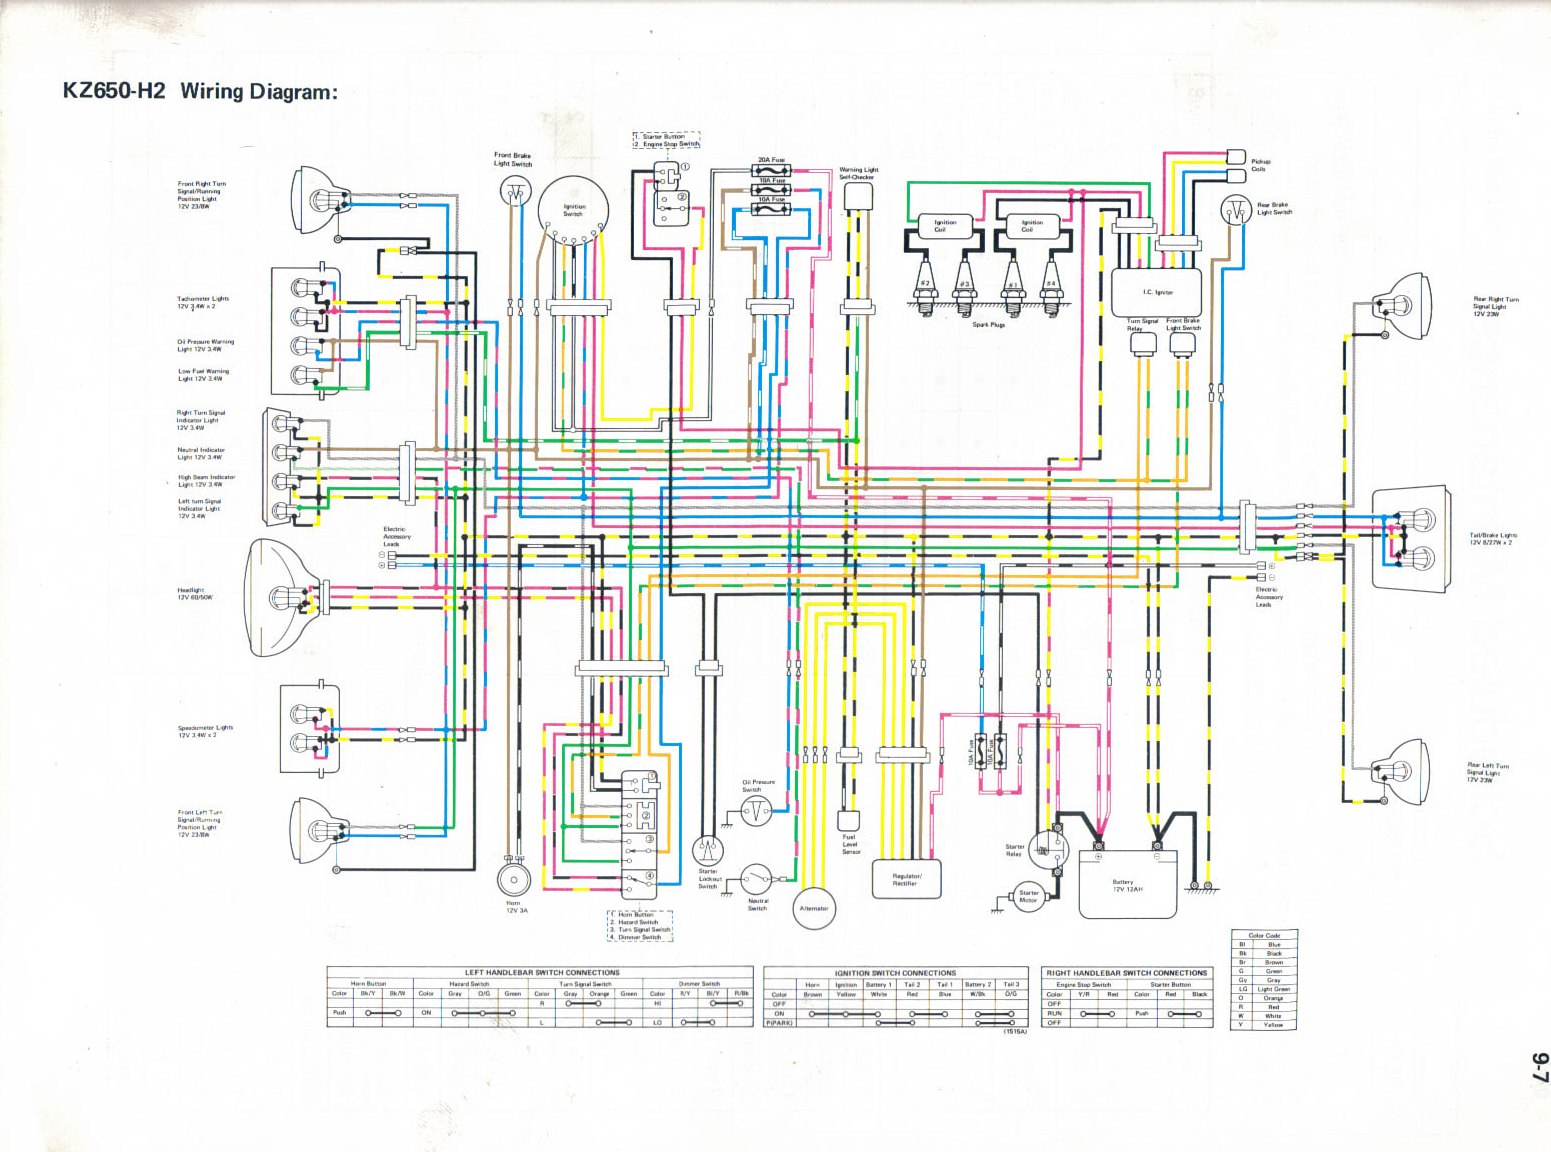 KZ650 H2 kz650 info wiring diagrams Wiring Harness Diagram at n-0.co